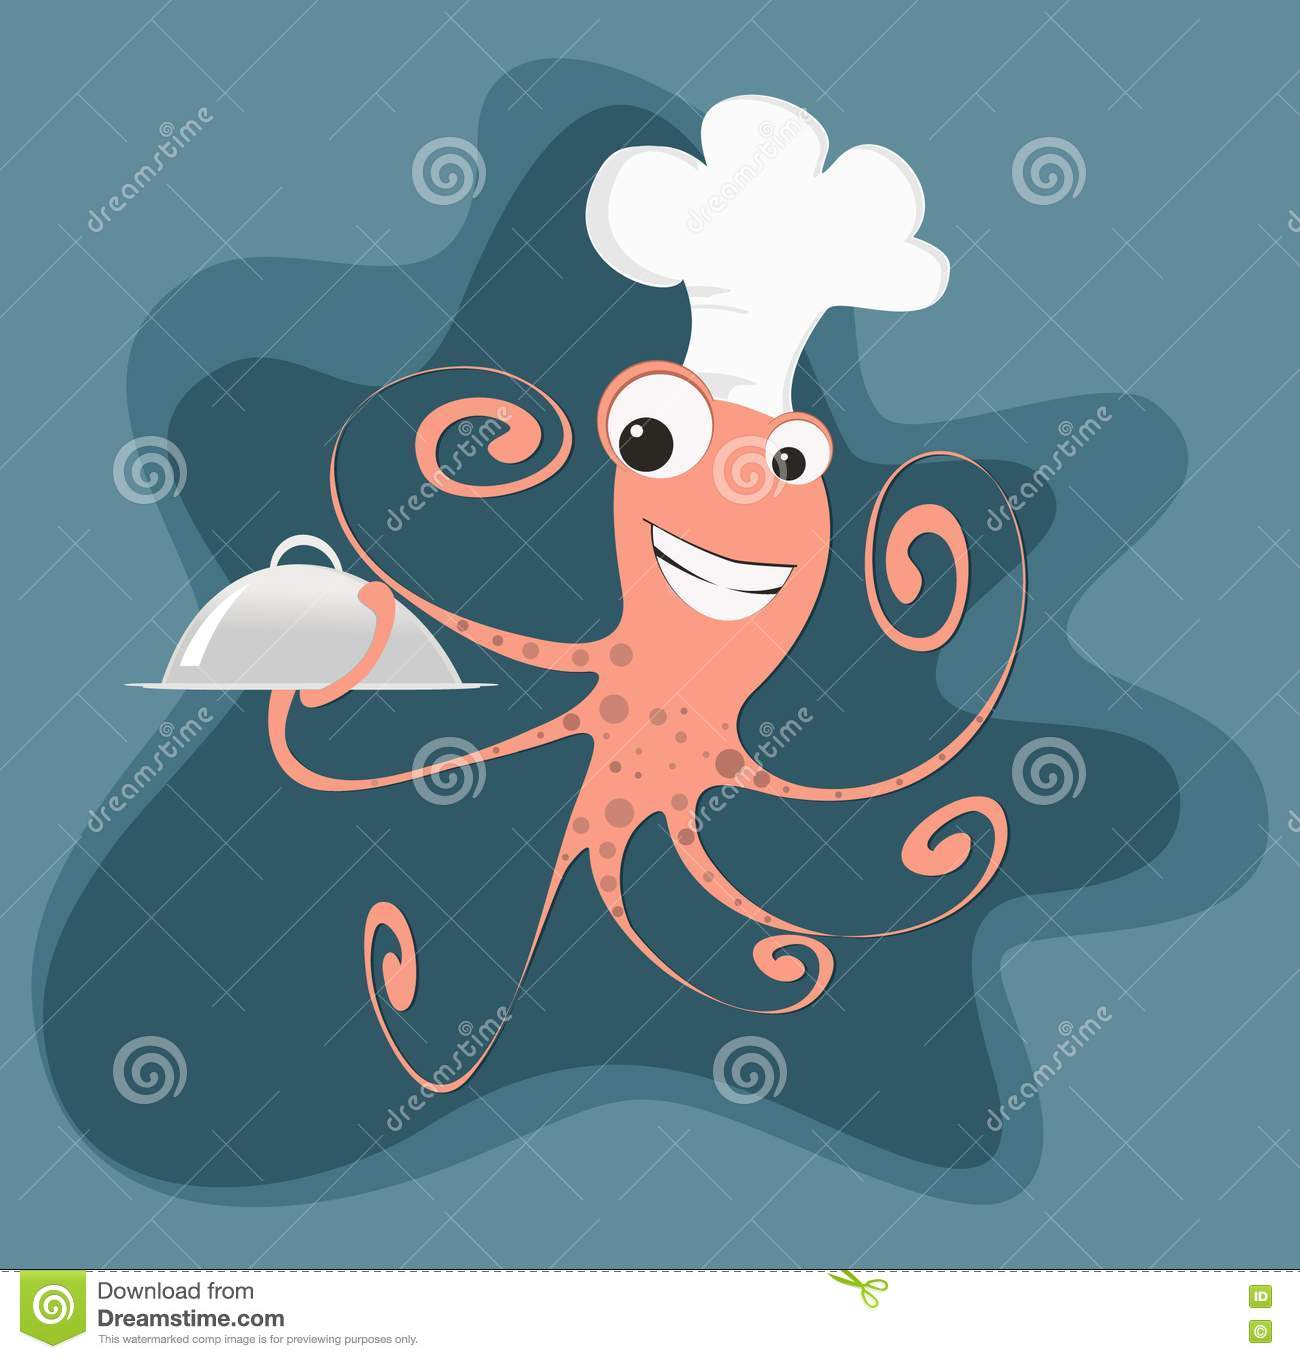 Cartoon octopus for Octopus in cartoon